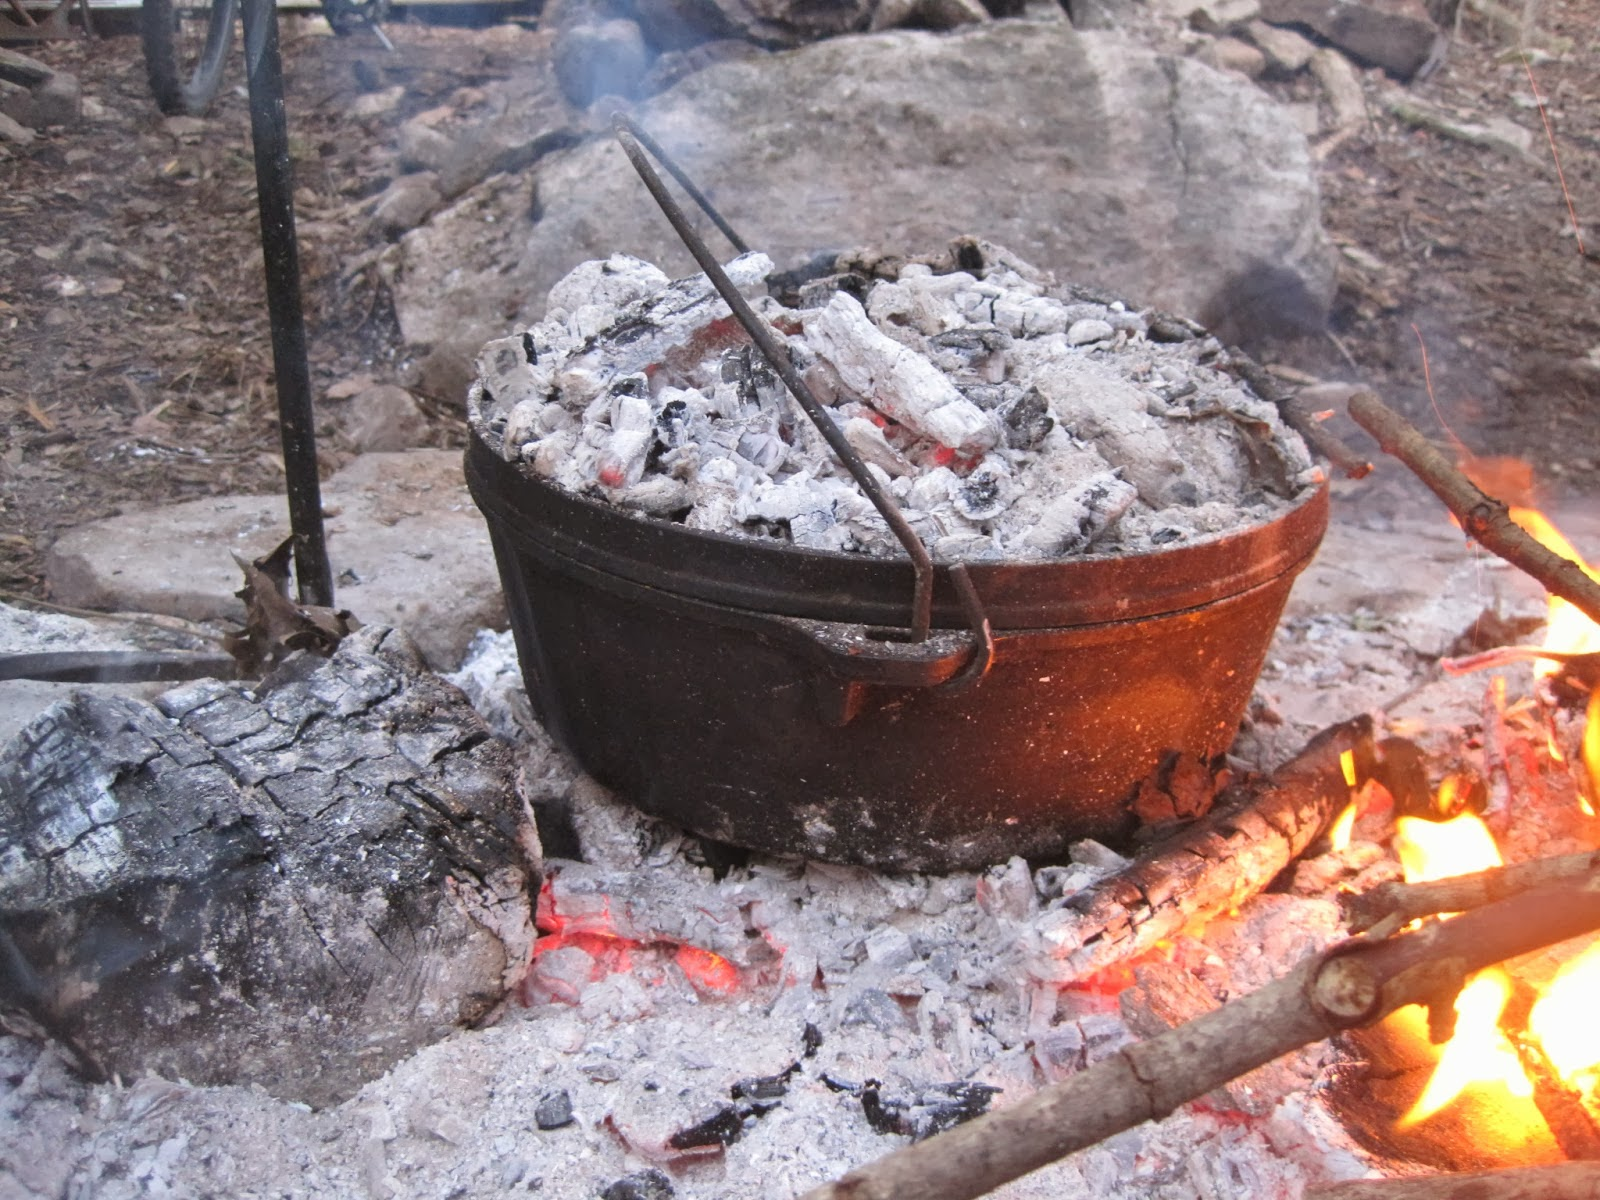 Campfire cooking class at payne 39 s prairie preserve rural for How to cook in a dutch oven over a campfire